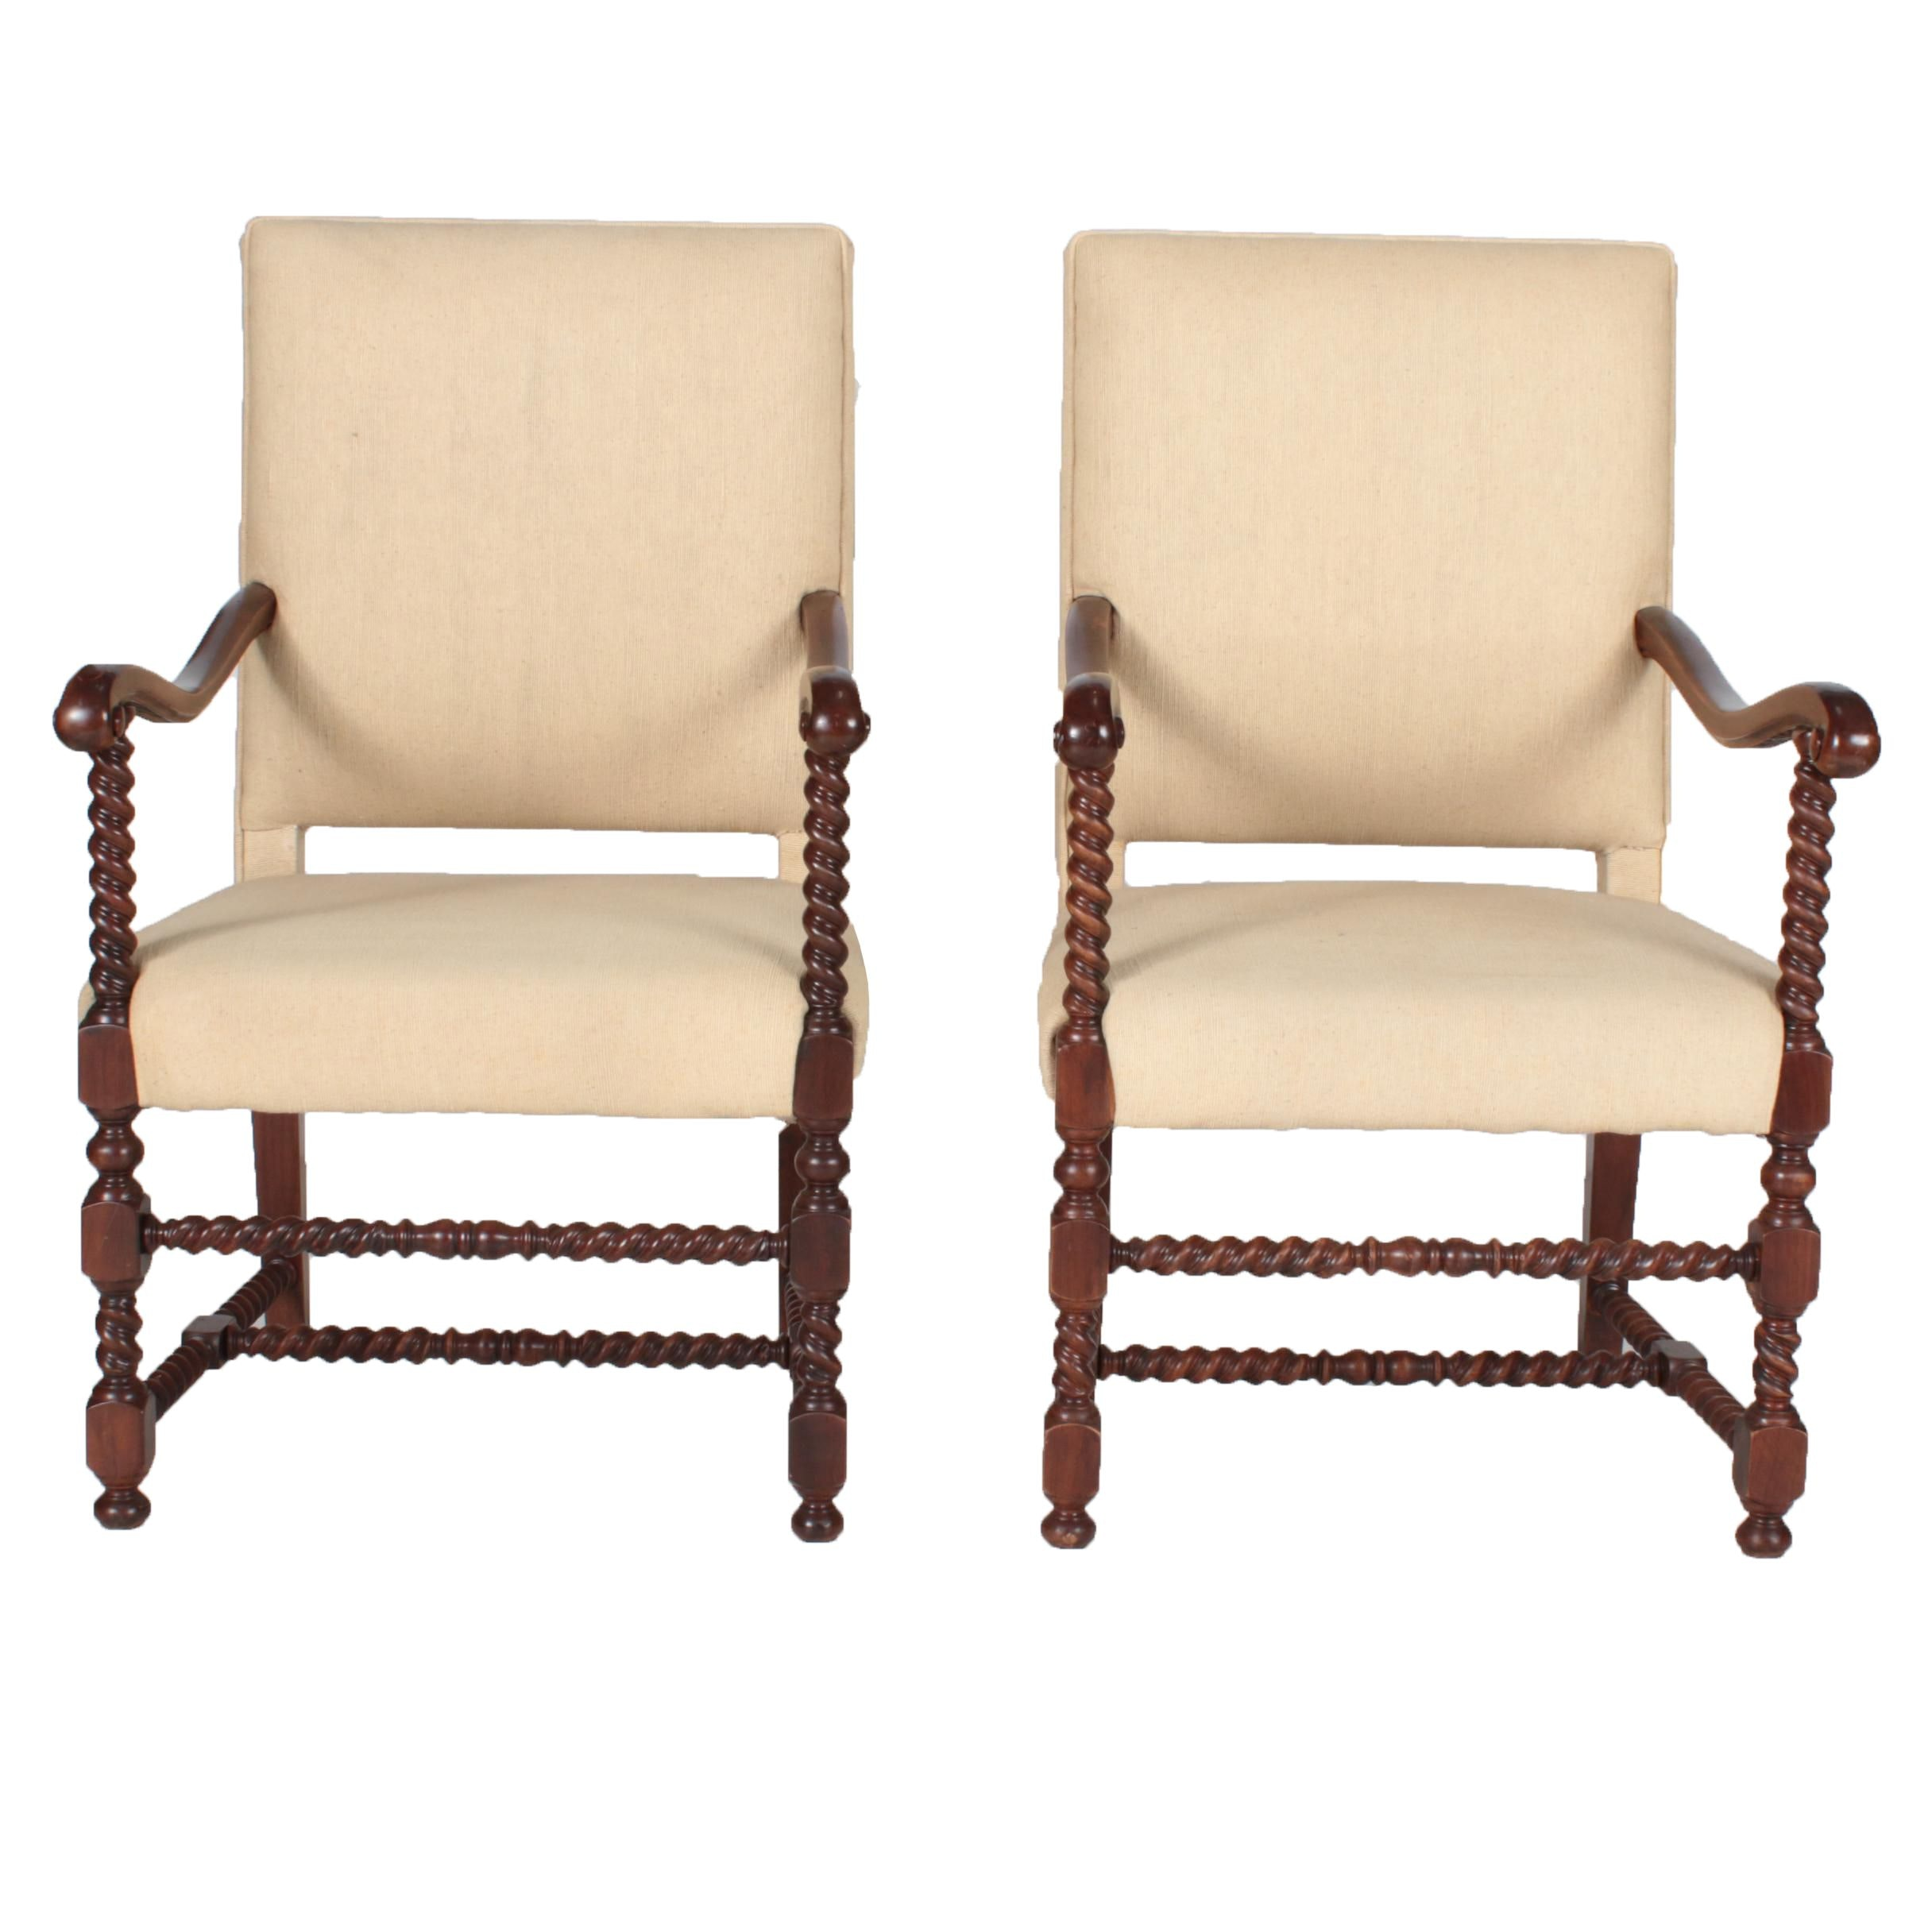 Pair of Vintage Tudor Style Carved Mahogany Open Armchairs